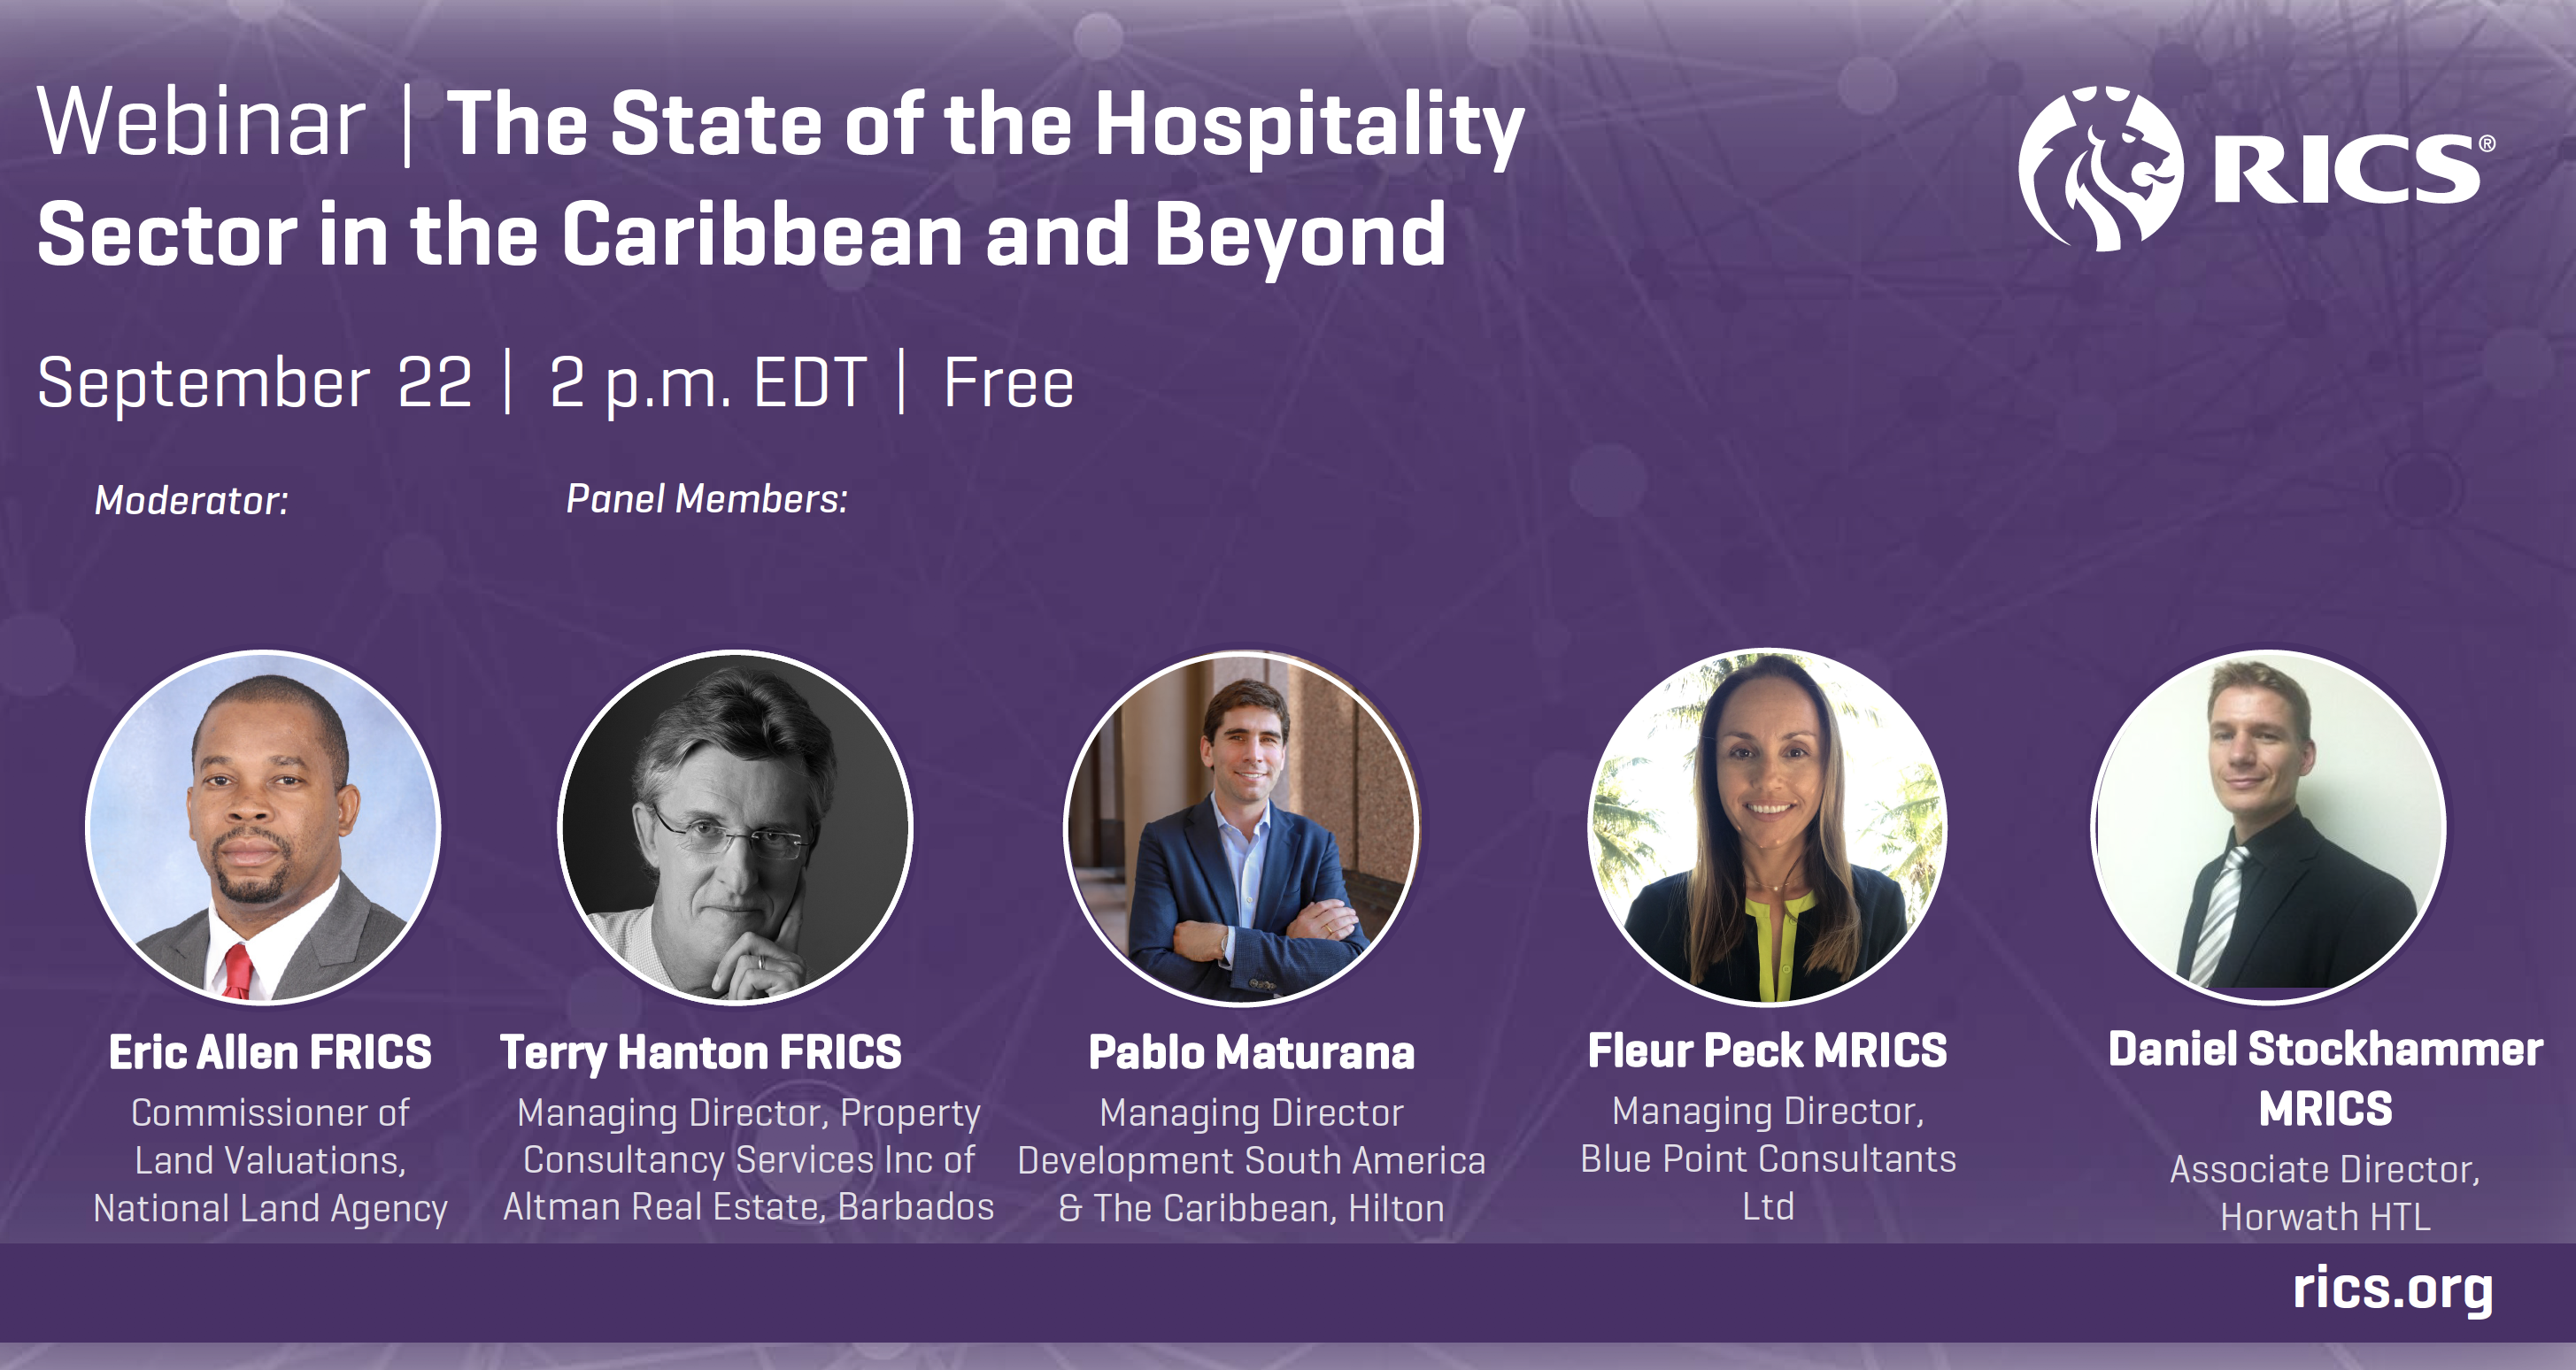 The State of the Hospitality Sector in the Caribbean & Beyond Webinar, Tues 22 Sept 2020